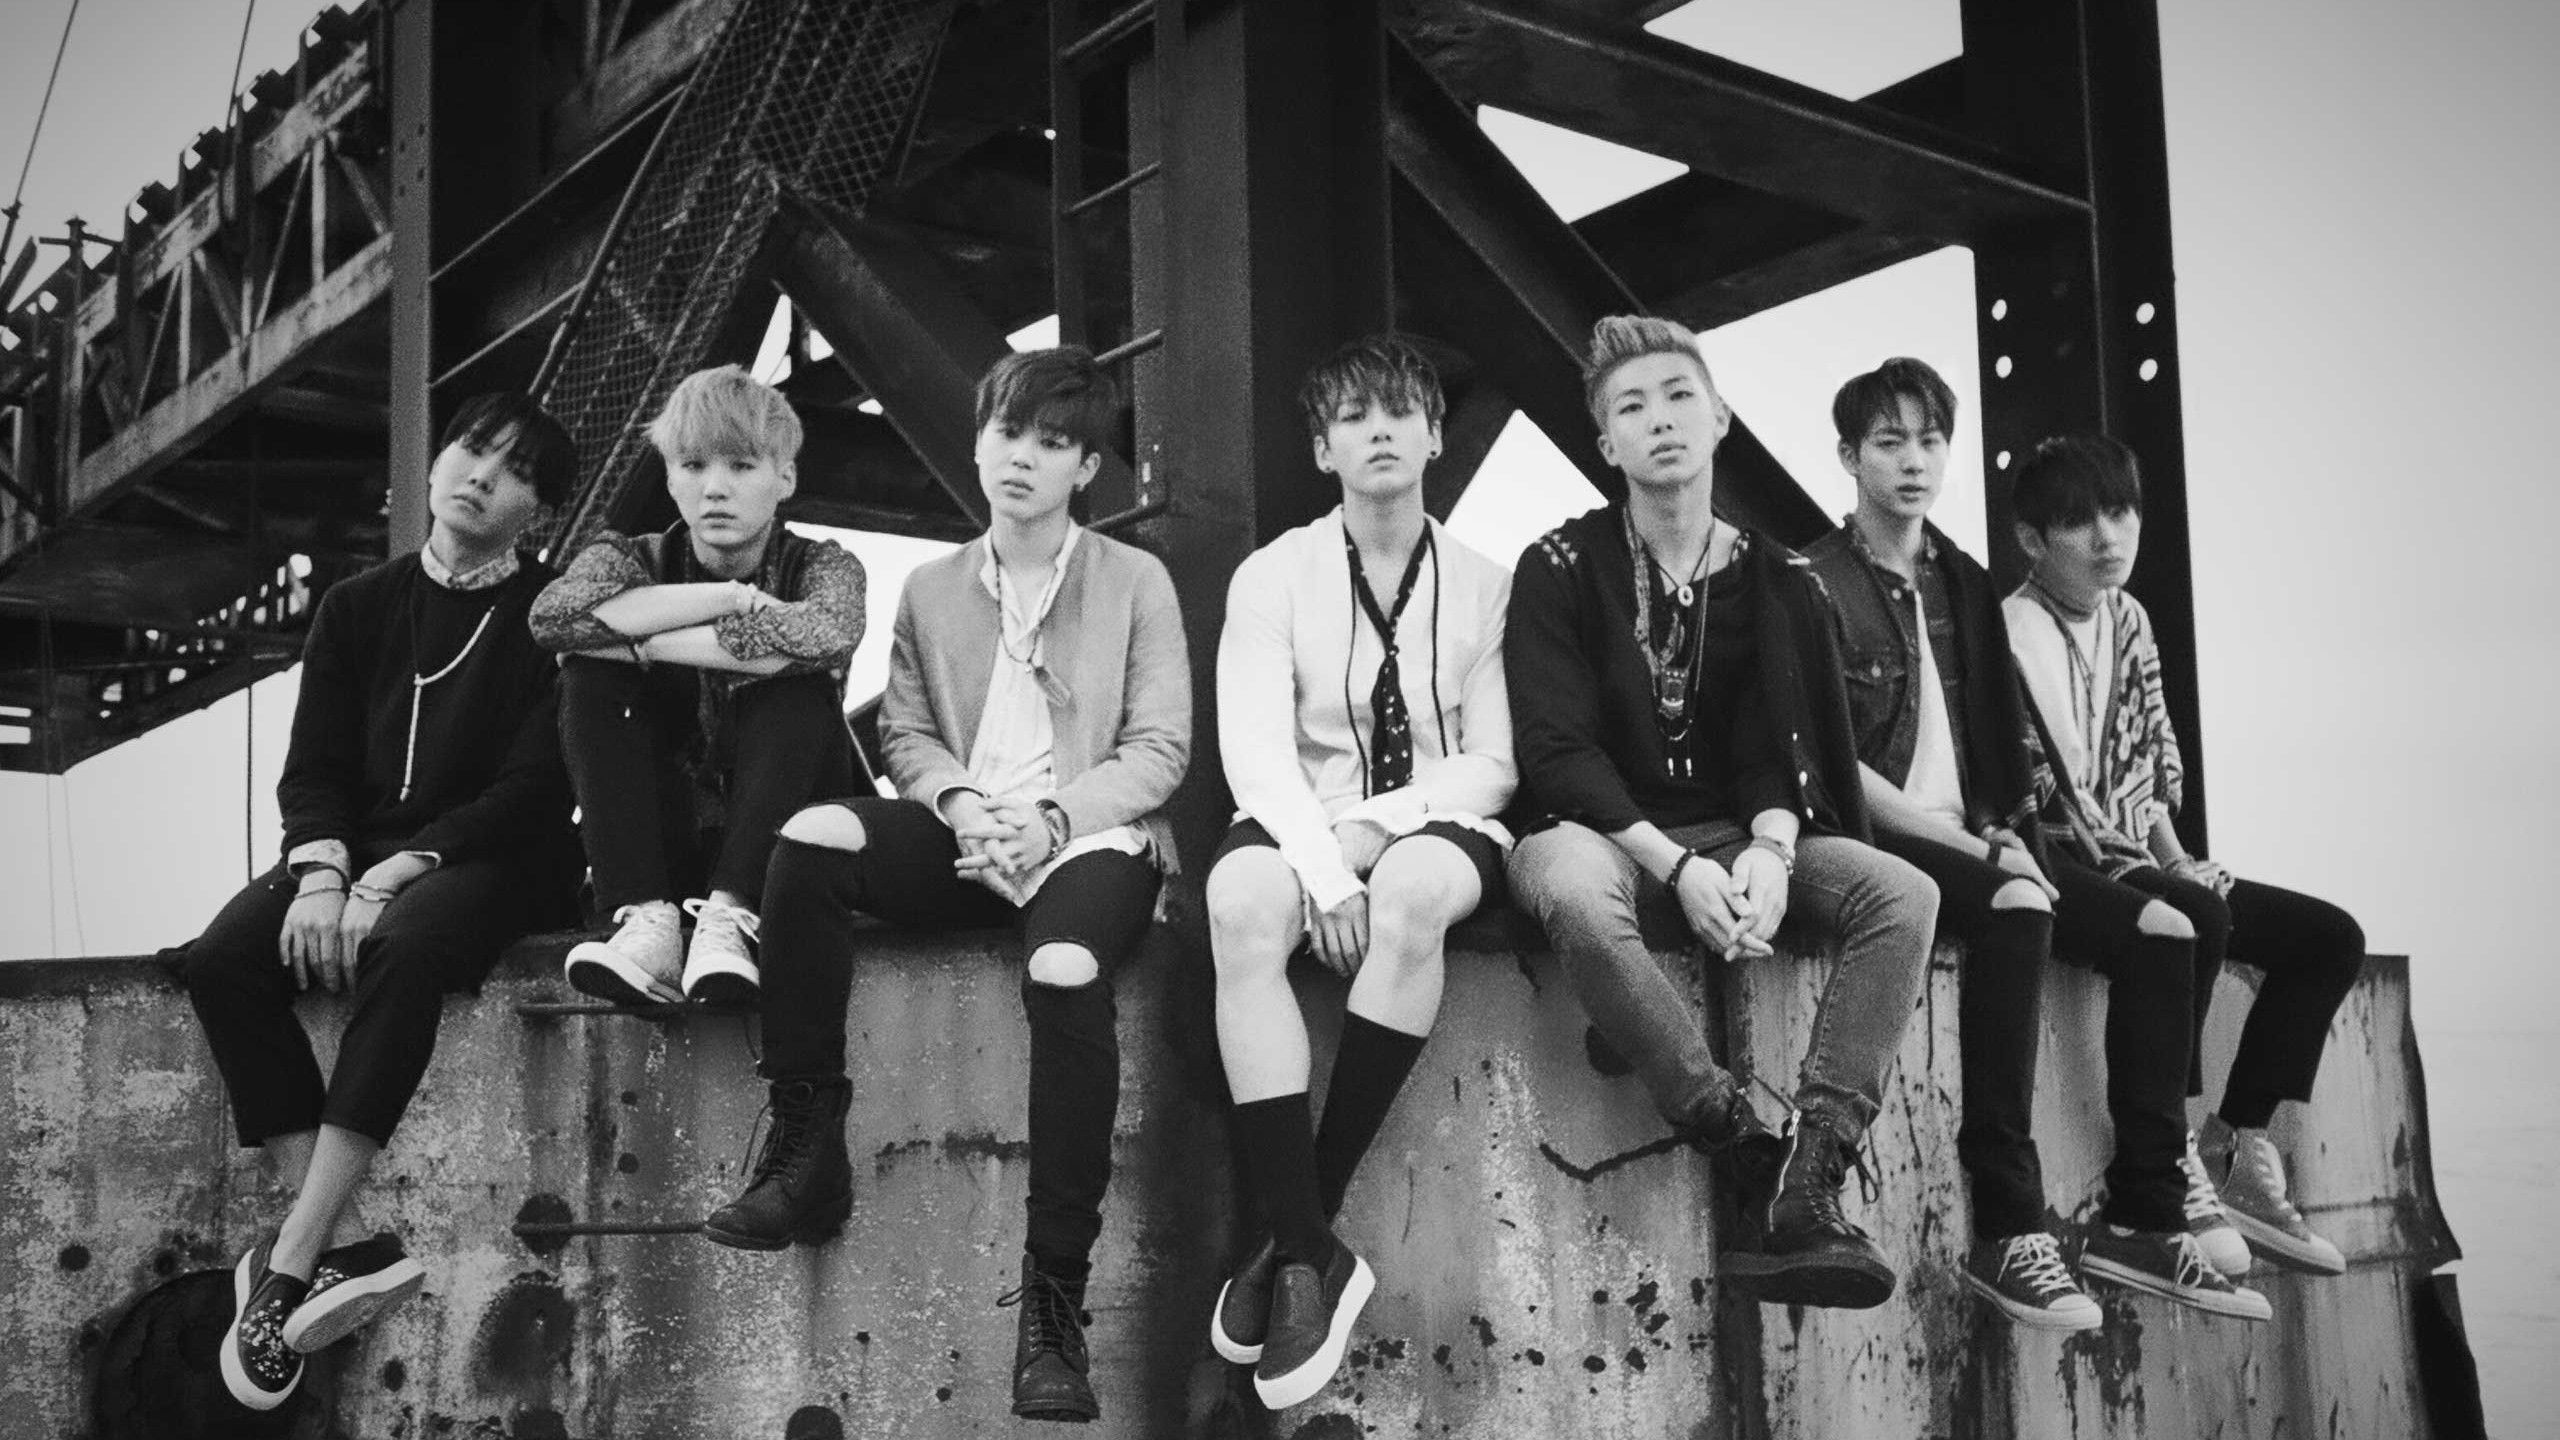 bts black white wallpaper